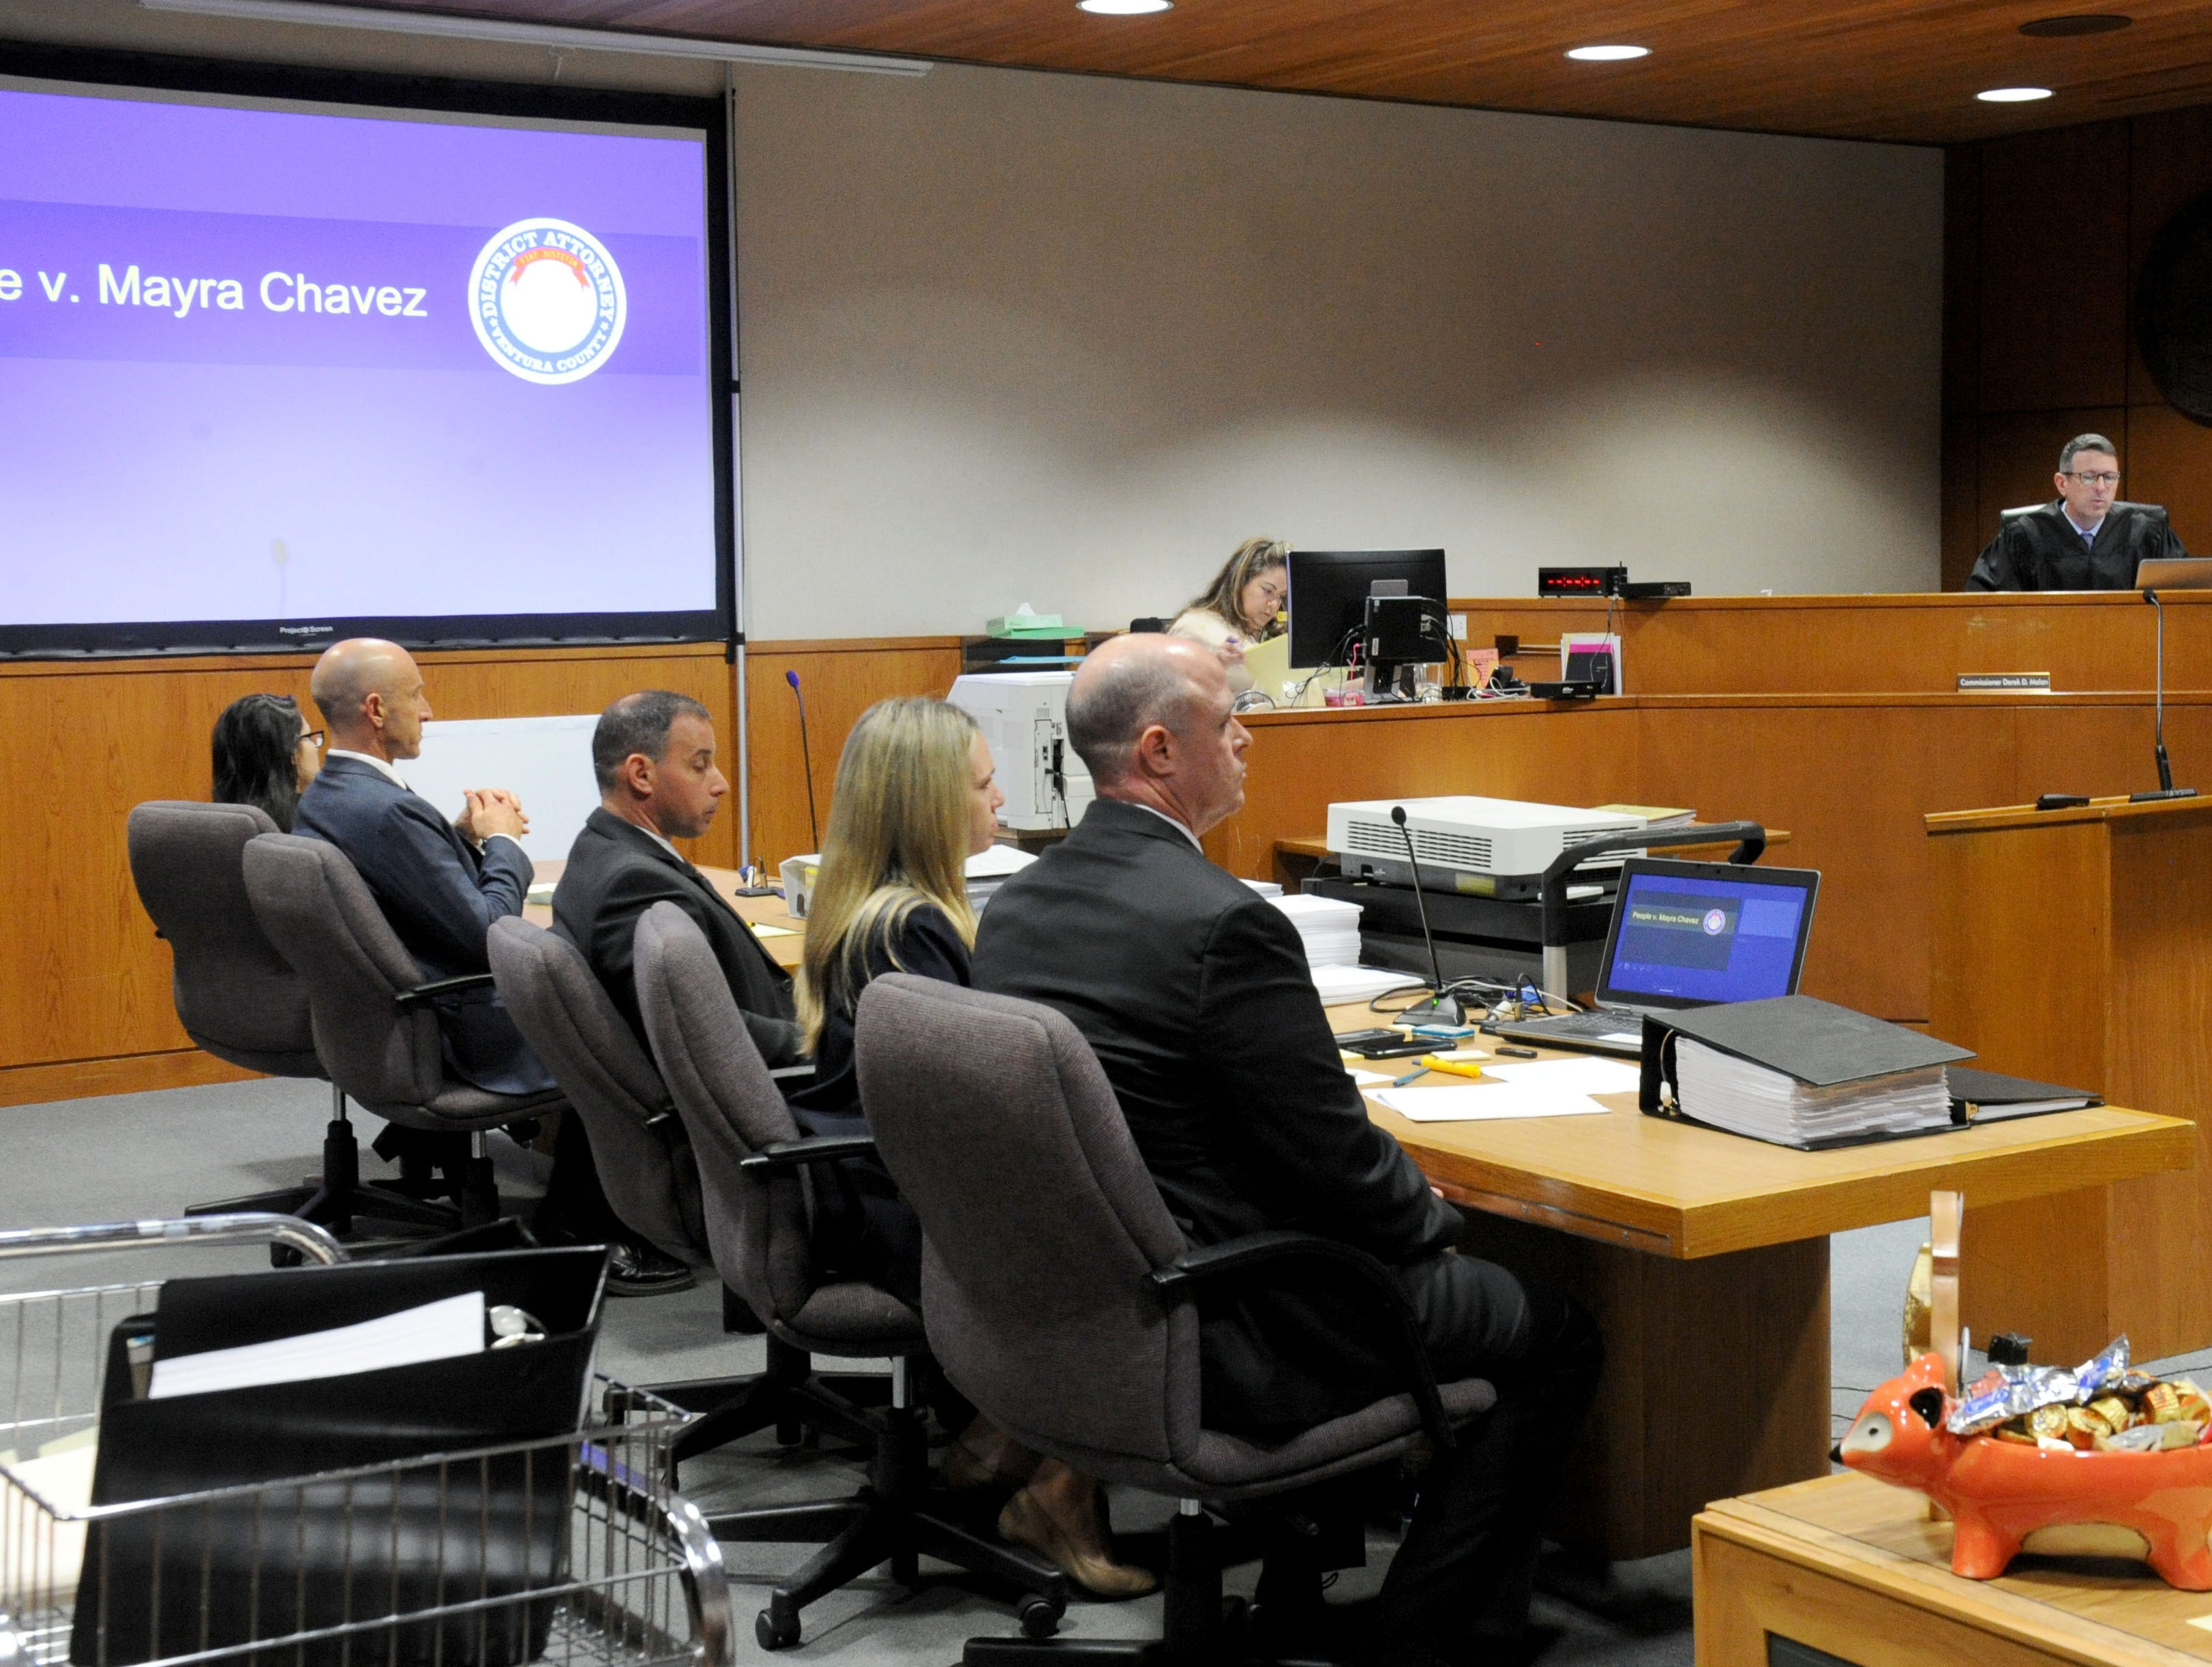 Attorneys in the Mayra Chavez trial wait for the jury to enter the courtroom Tuesday at Ventura County Superior Court. She is accused of killing her 3-year-old daughter Kimberly Lopez who authorities believe to be dead somewhere in Mexico.